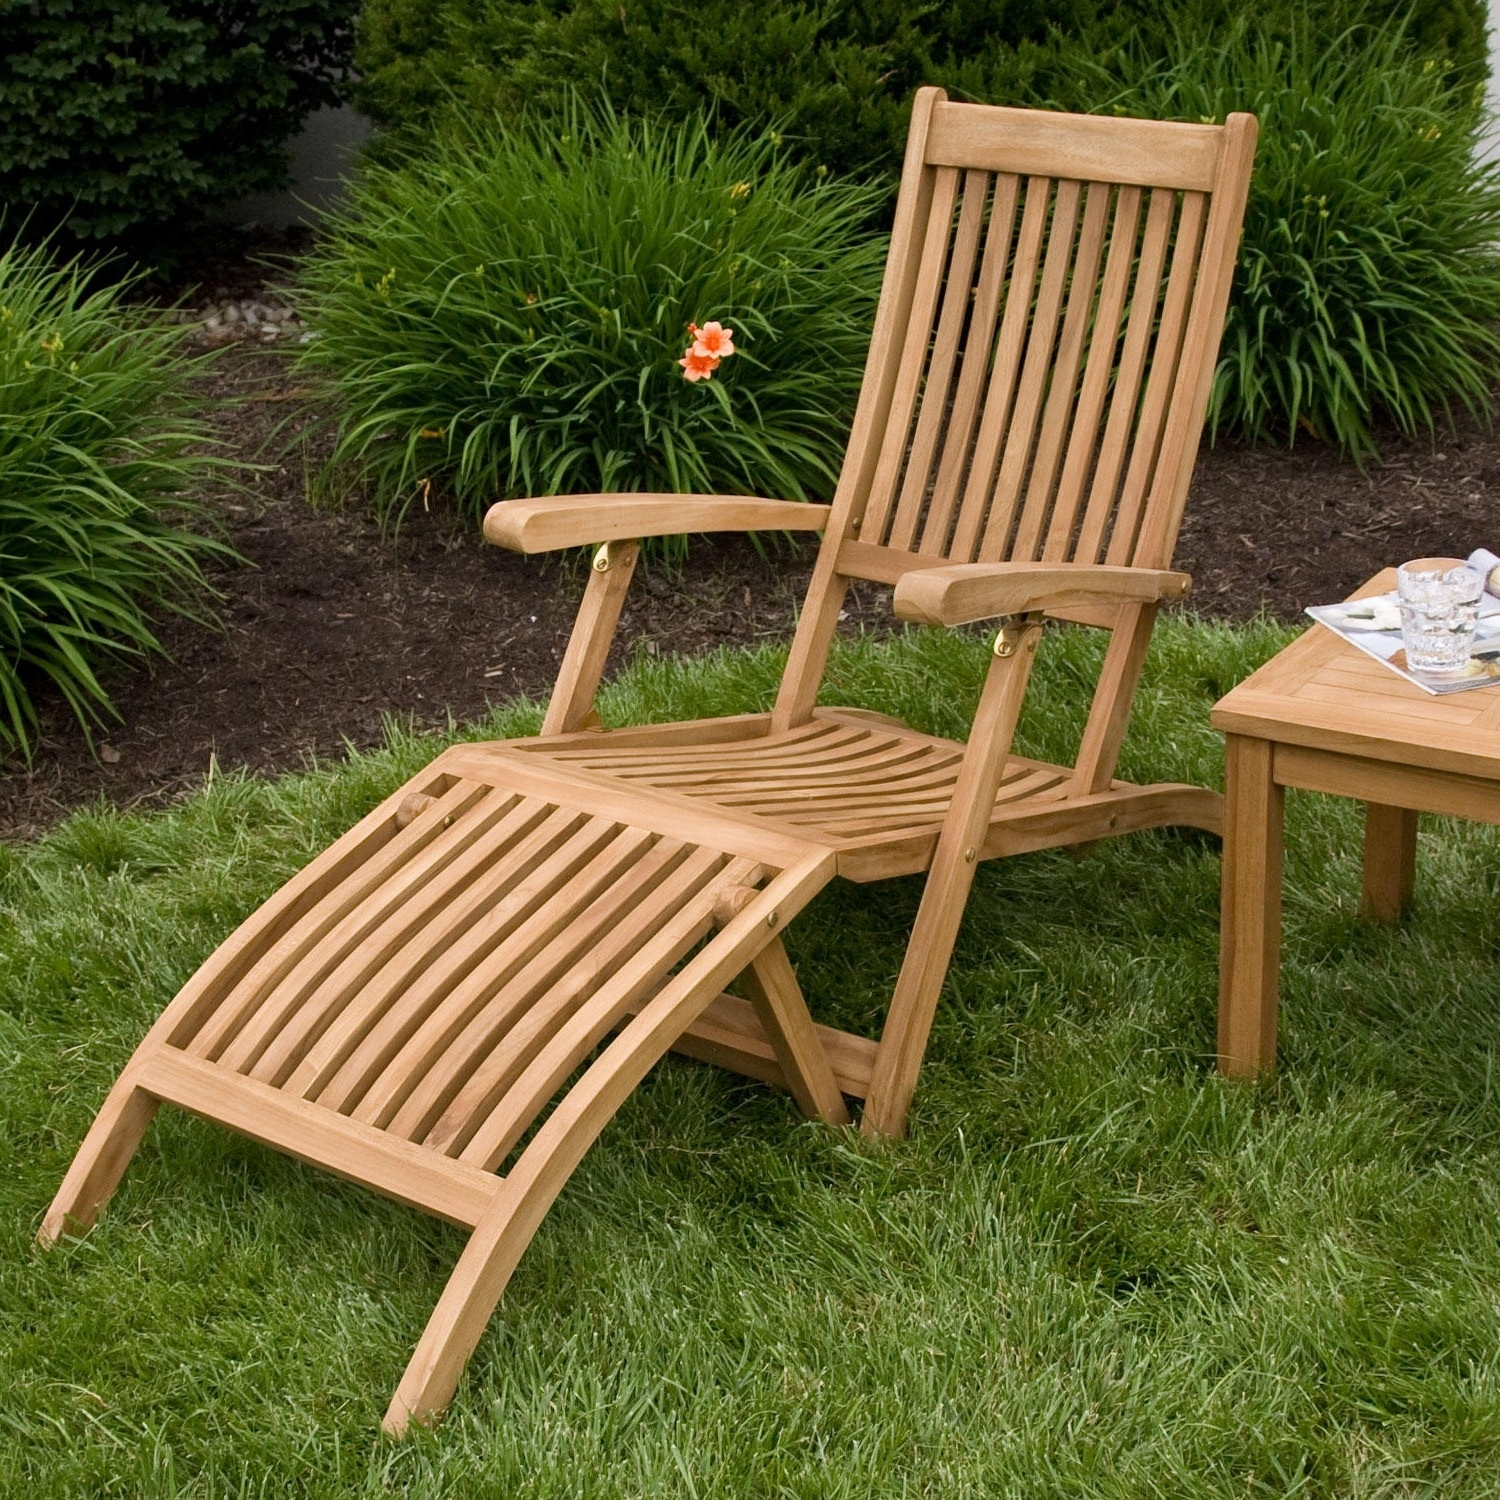 Holley Teak Outdoor Folding Steamer Lounge Chair – Outdoor Throughout Recent Cheap Folding Chaise Lounge Chairs For Outdoor (View 11 of 15)